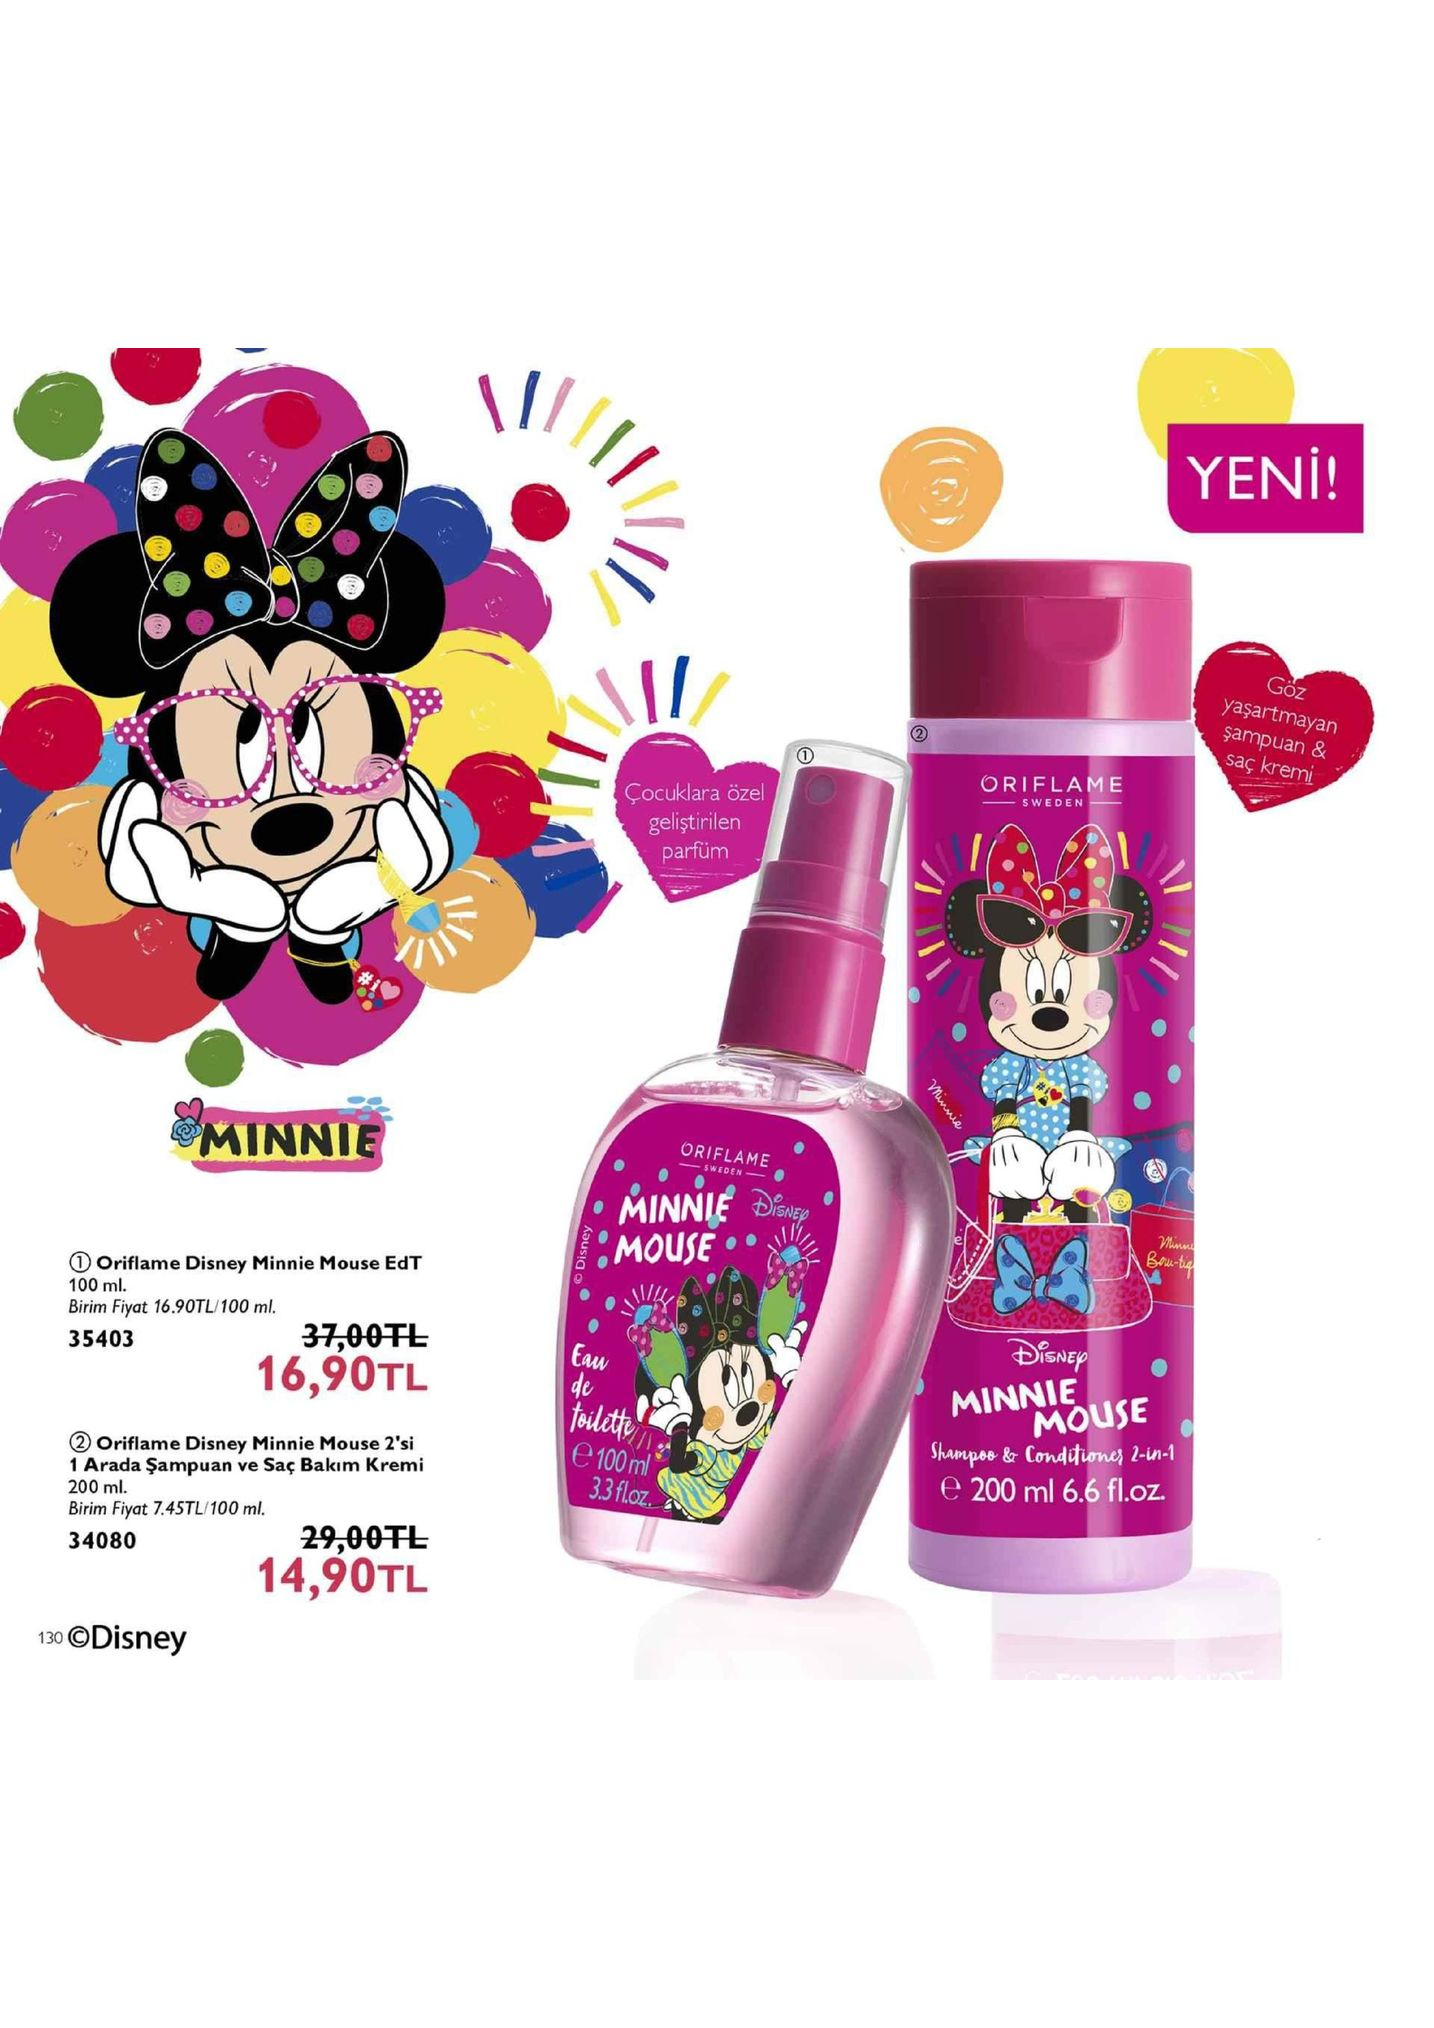 yeni! goz yaşartmayan şampuan & saç kremi oriflame çocuklara özel geliştirilen parfüm minnie oriflame mouse oriflame disney minnie mouse edt 100 ml birim fiyat 16.90tl/100 ml. 35403 37,00干し 16,90tl isne minnie shampes & condtuone, 2-in-1 e 200 ml 6.6 fl.oz aw mouse fodlcth e 100 ml oriflame disney minnie mouse 2'si 1 arada şampuan ve saç bakim kremi 200 ml birim fiyat 7.4stl/100 ml. 34080 oz 29.00tl 14,90tl 130 odisney